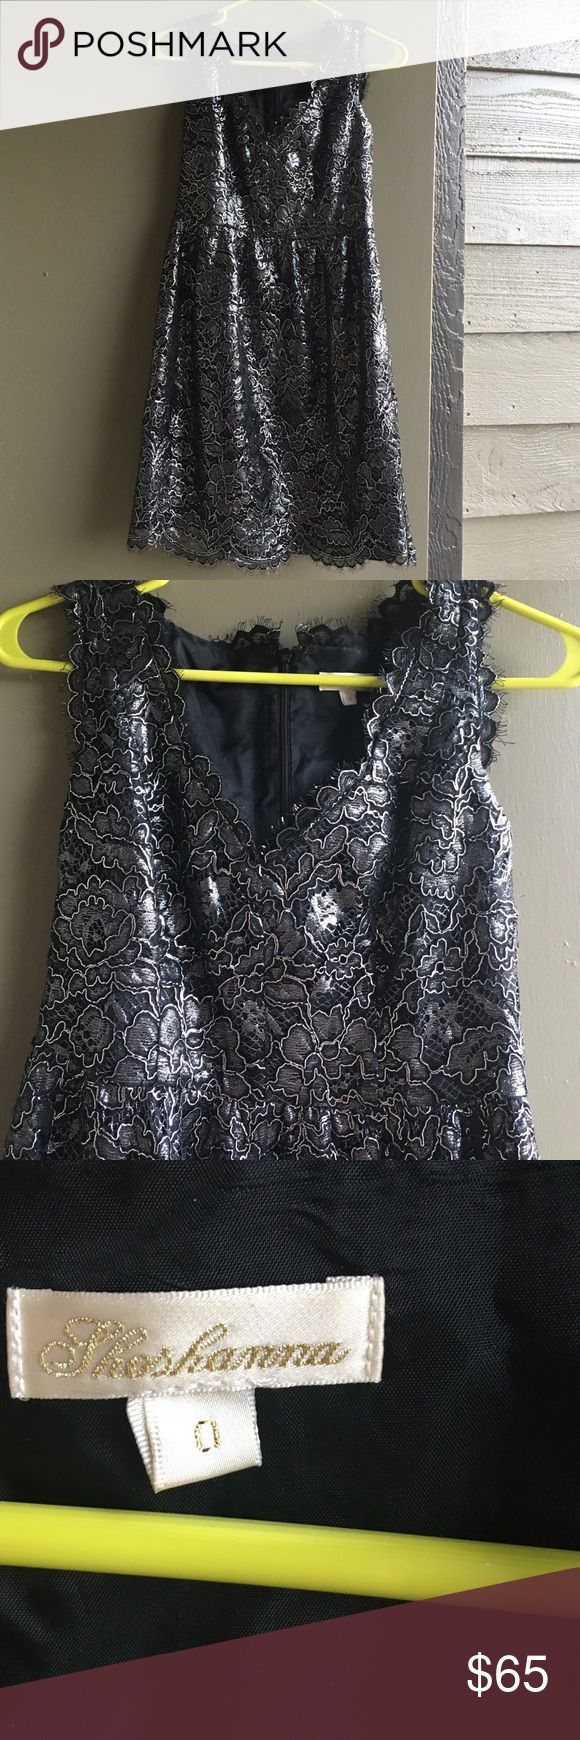 Metallic mini dress! Size 0! Perfect for New Years!! Bought at Von Mur worn once! shoshanna  Dresses Mini